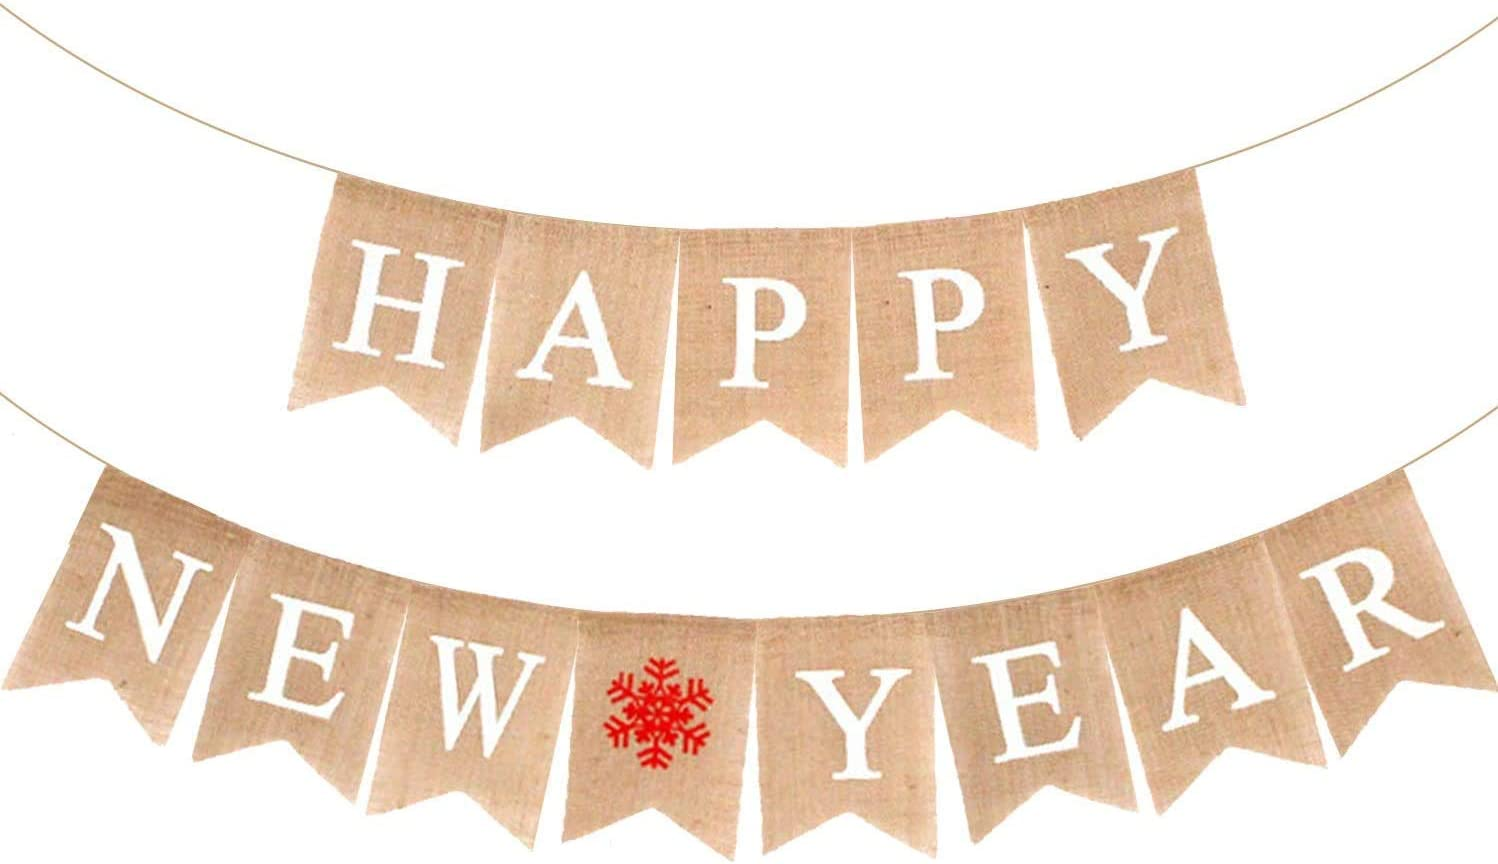 Happy New Year Burlap Banner Decorations - No DIY Required | Vintage Rustic Hanging Pennant Sign for New Years Eve Party Supplies Kit | New Years Eve Party Supplies | Happy New Year Party Decorations